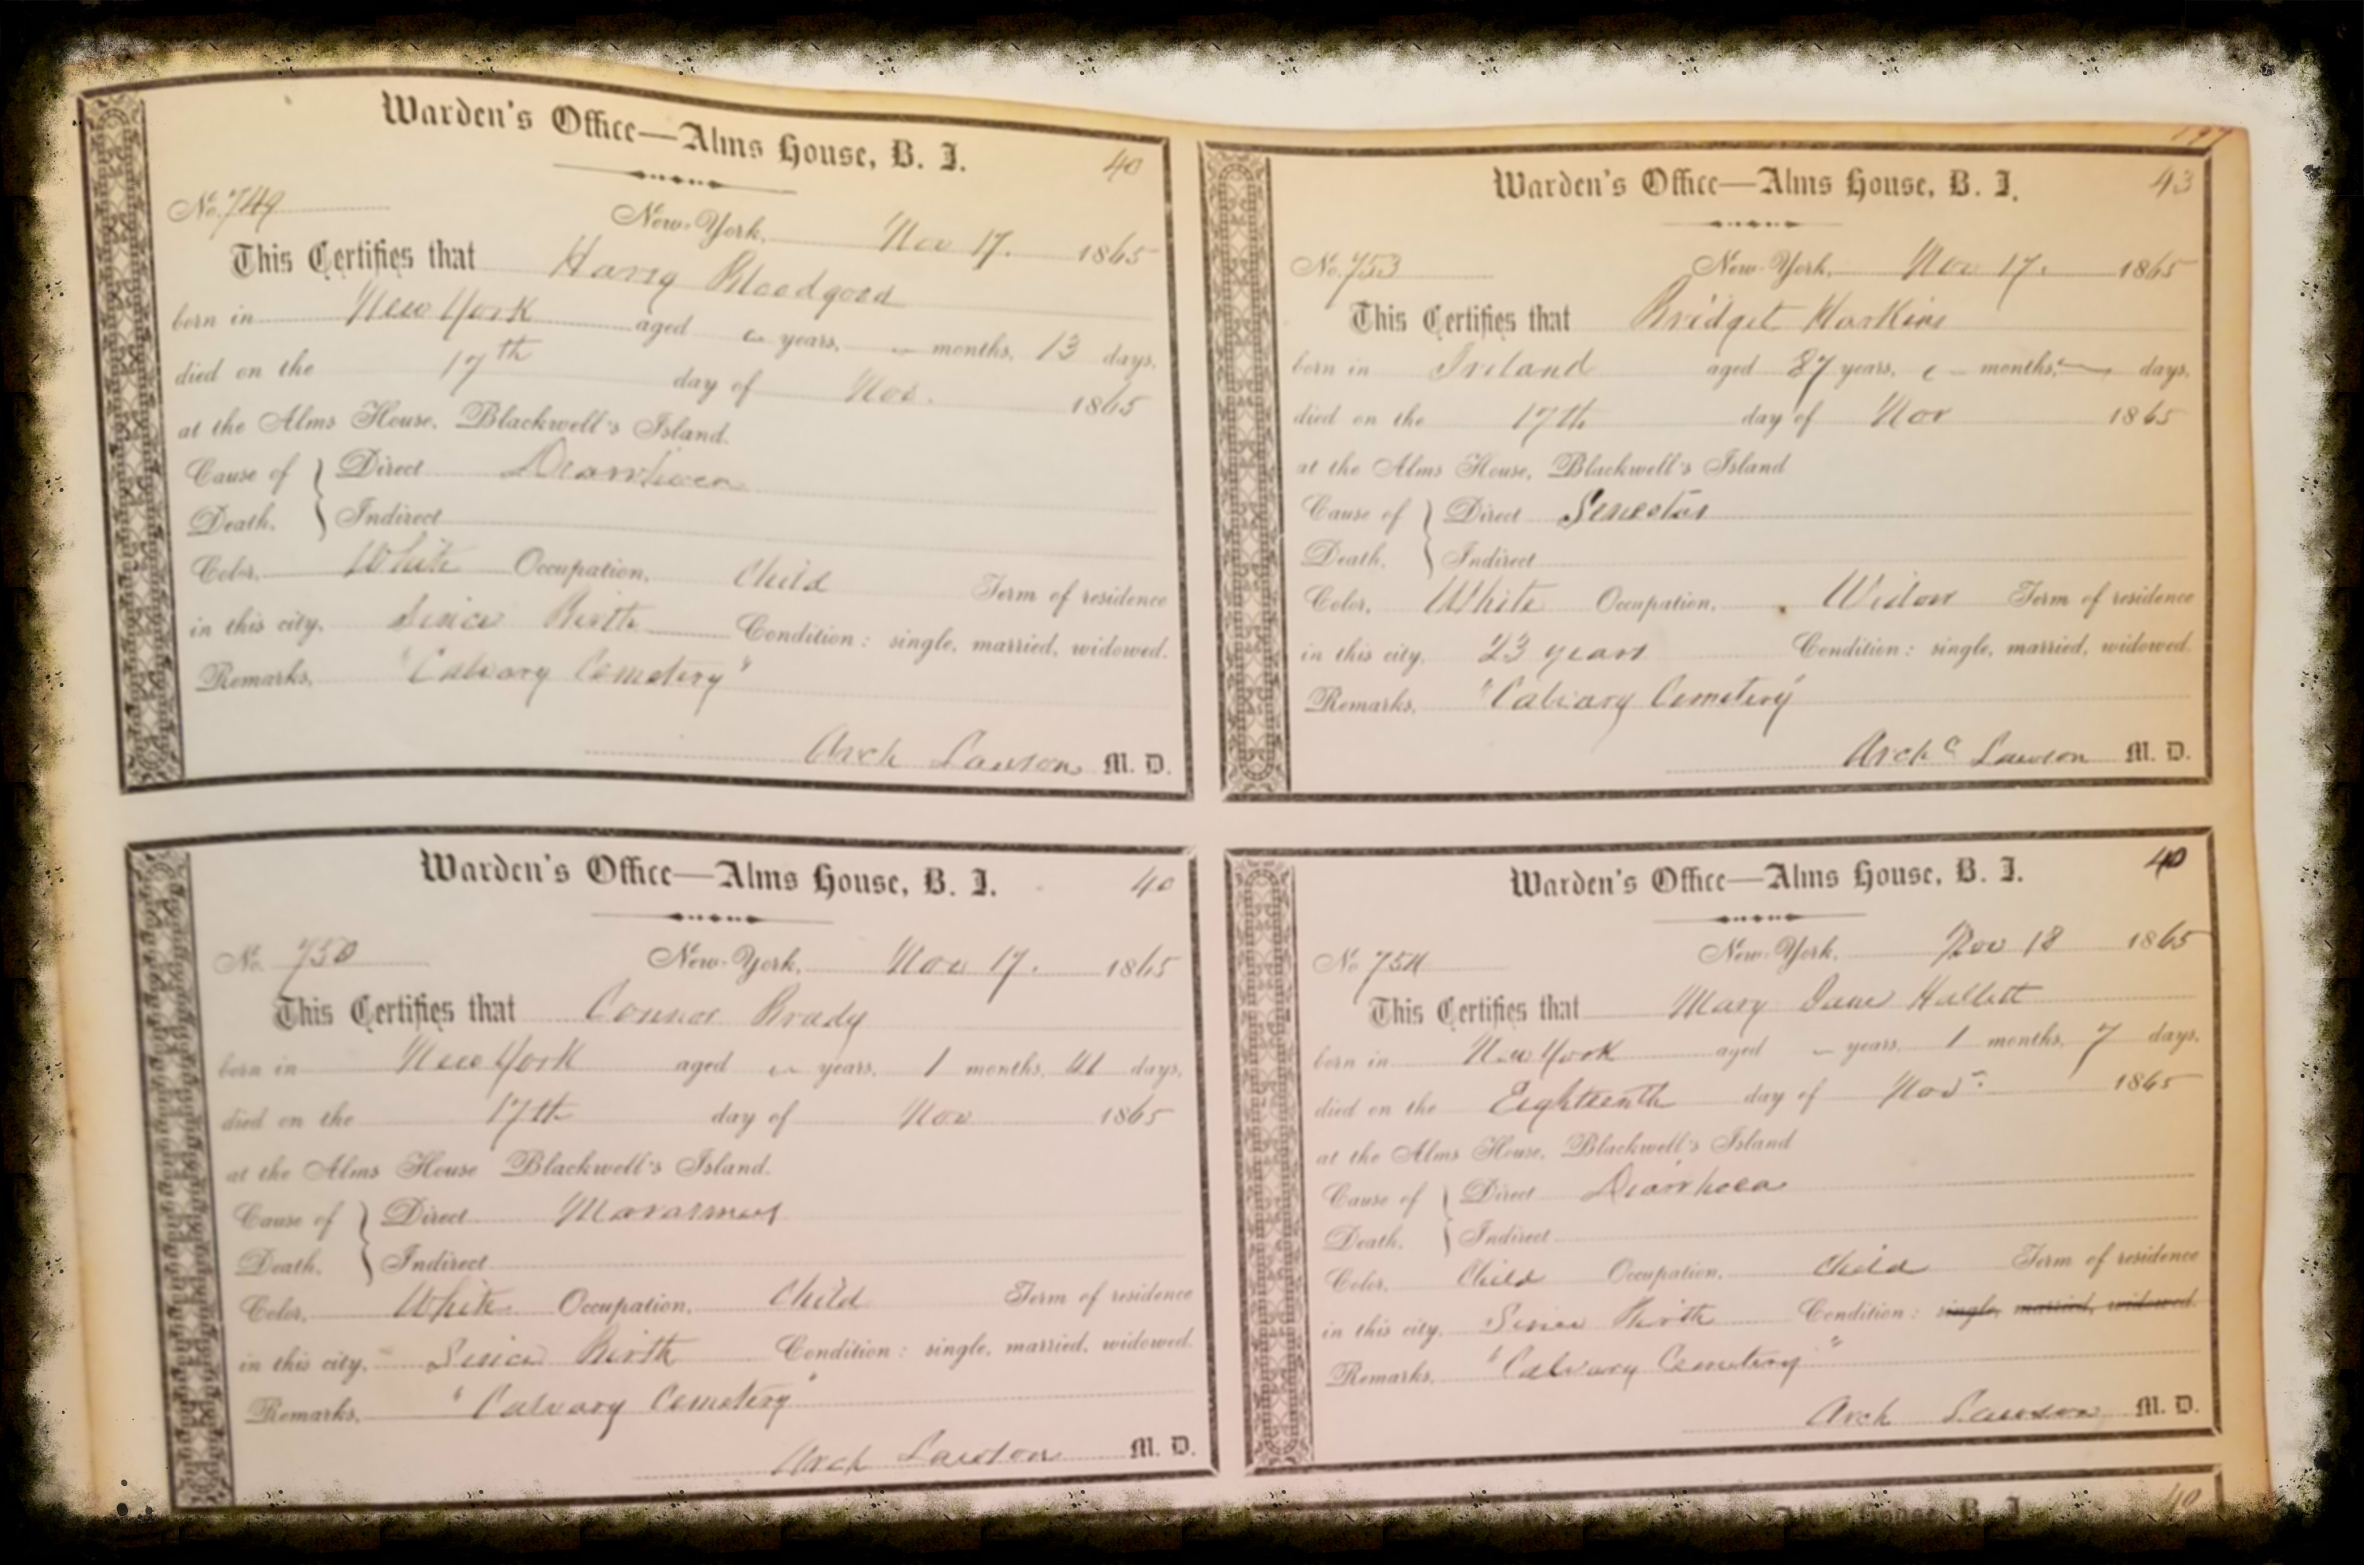 1864-1873 Certificates of Death